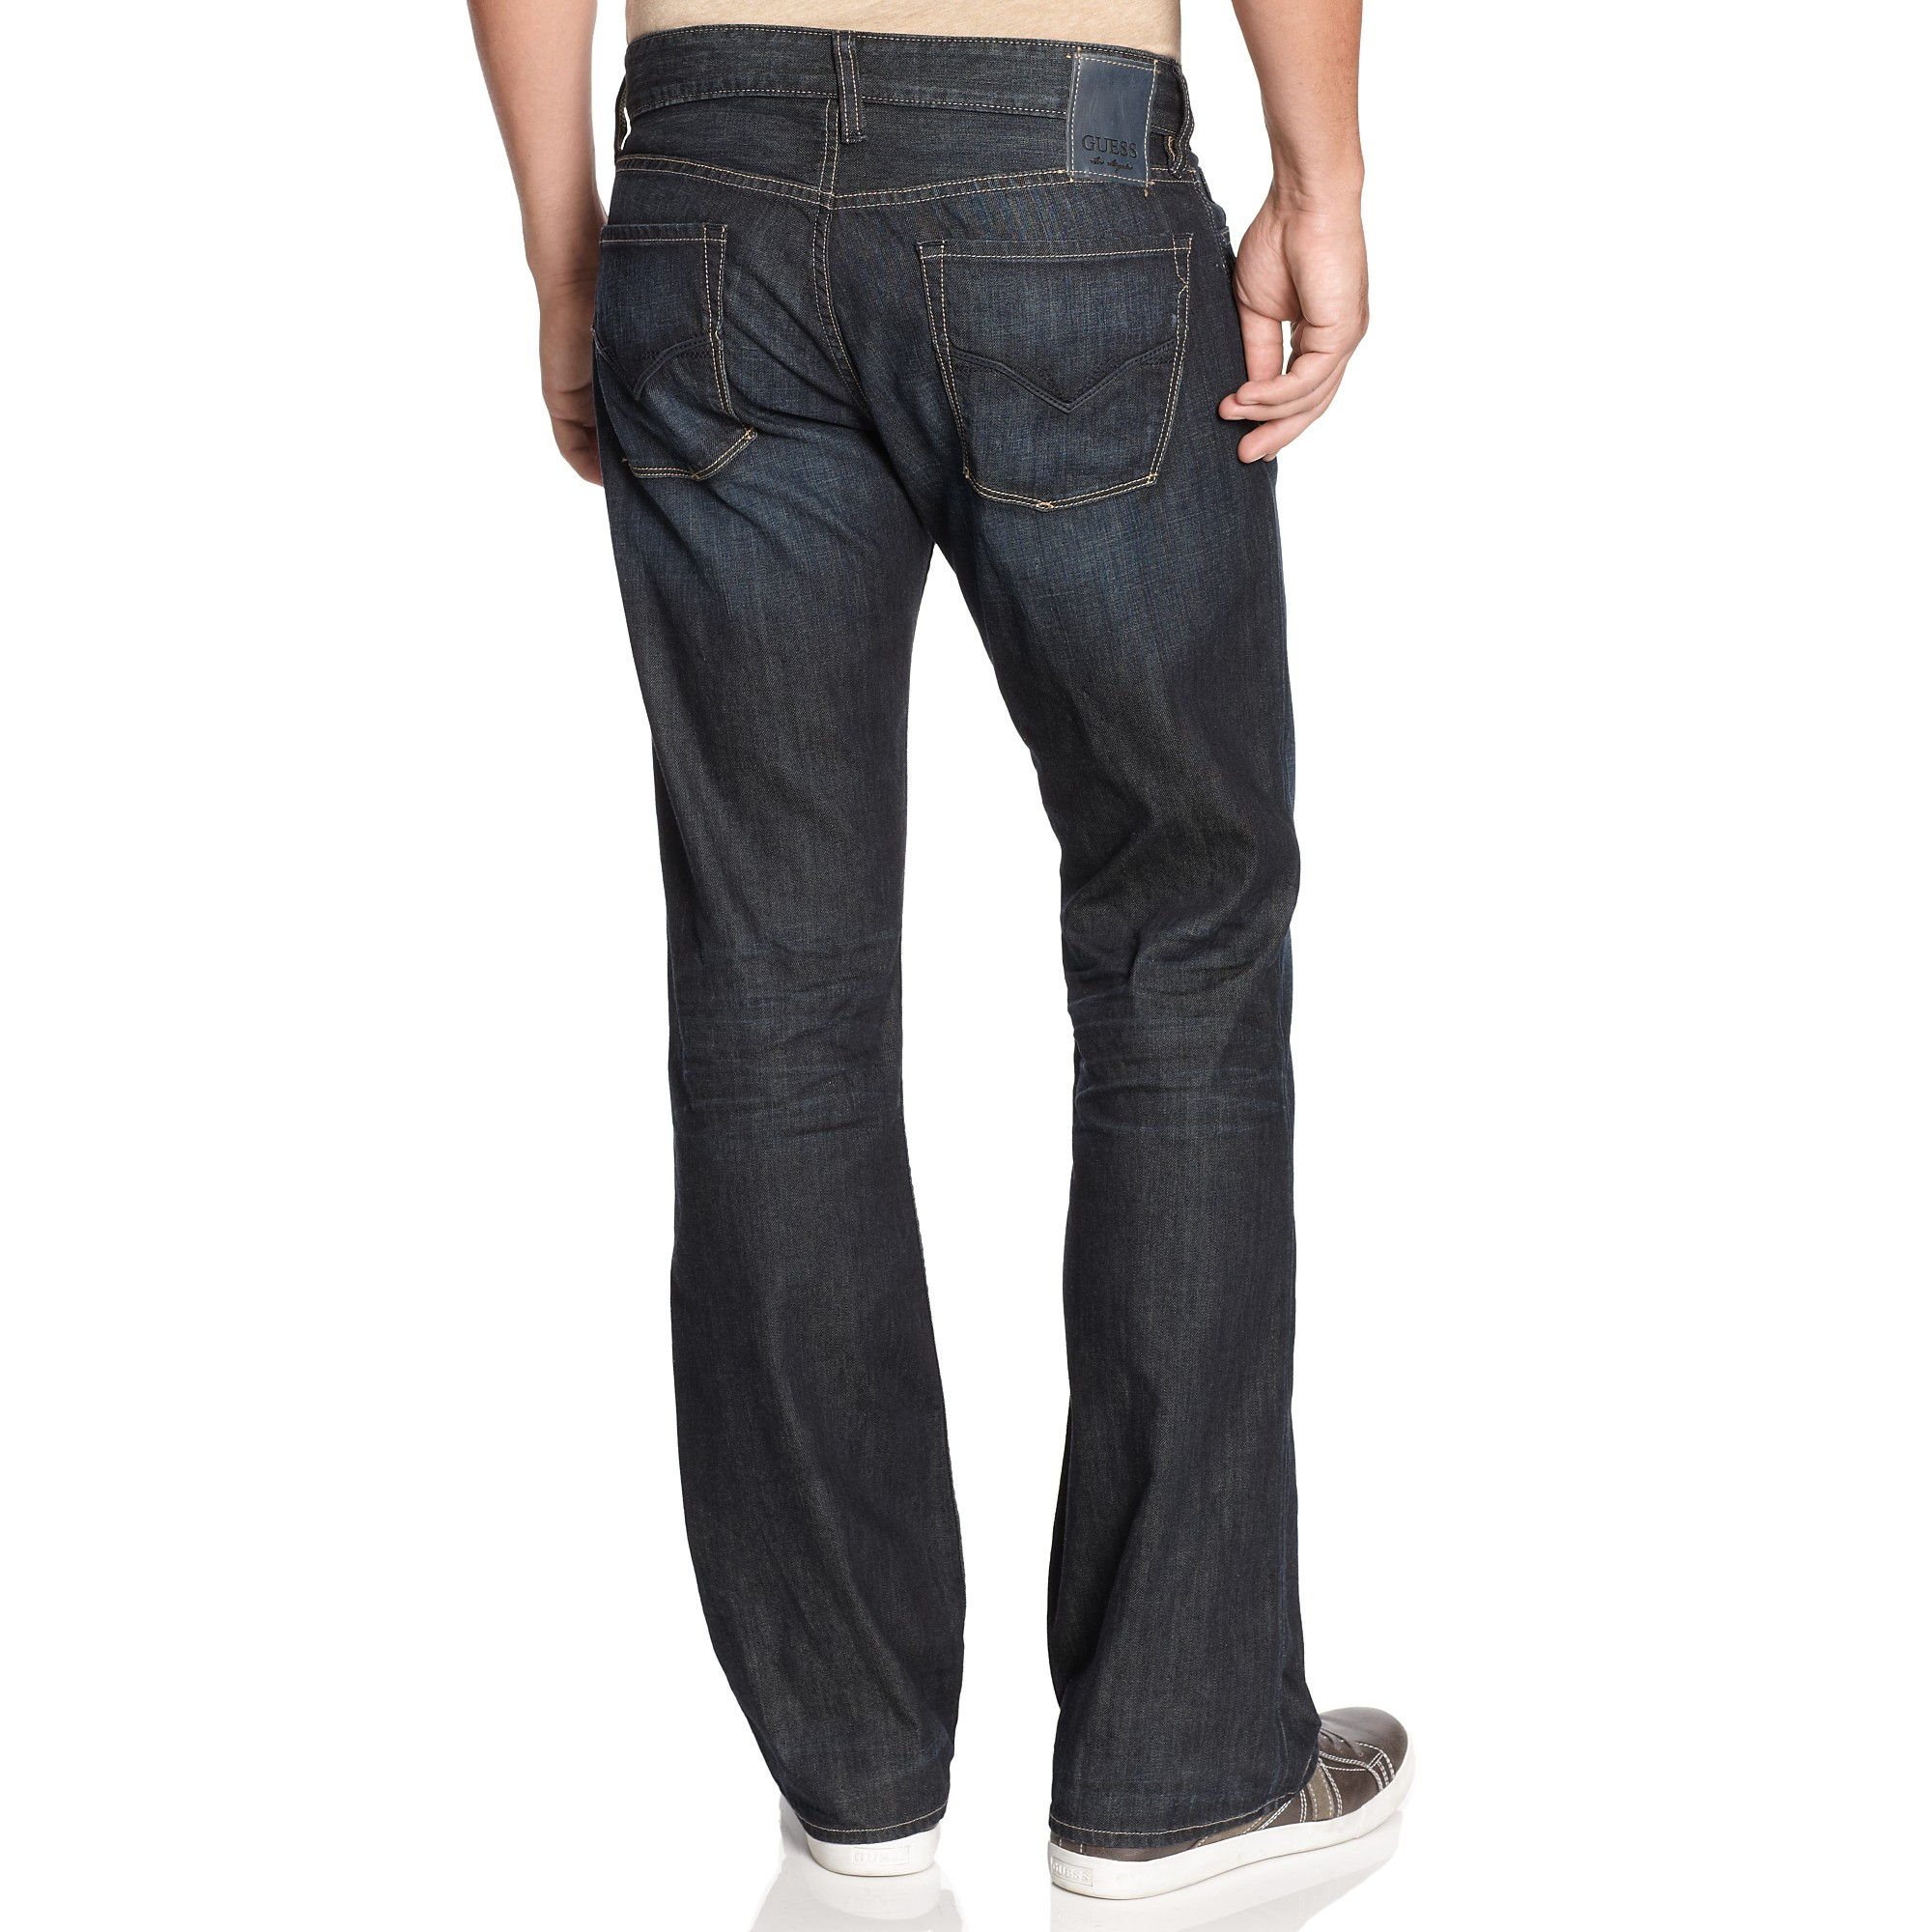 Shop Buckle for men's slim fit jeans that are fitted through the thigh and knee. Find slim fit jeans in variety of washes and leg openings. Lampson Slim Boot Stretch Jean. Slim Fit. $ Add to Favorites. Rock Revival. Hern Slim Straight Stretch Jean. Slim Fit. $ .